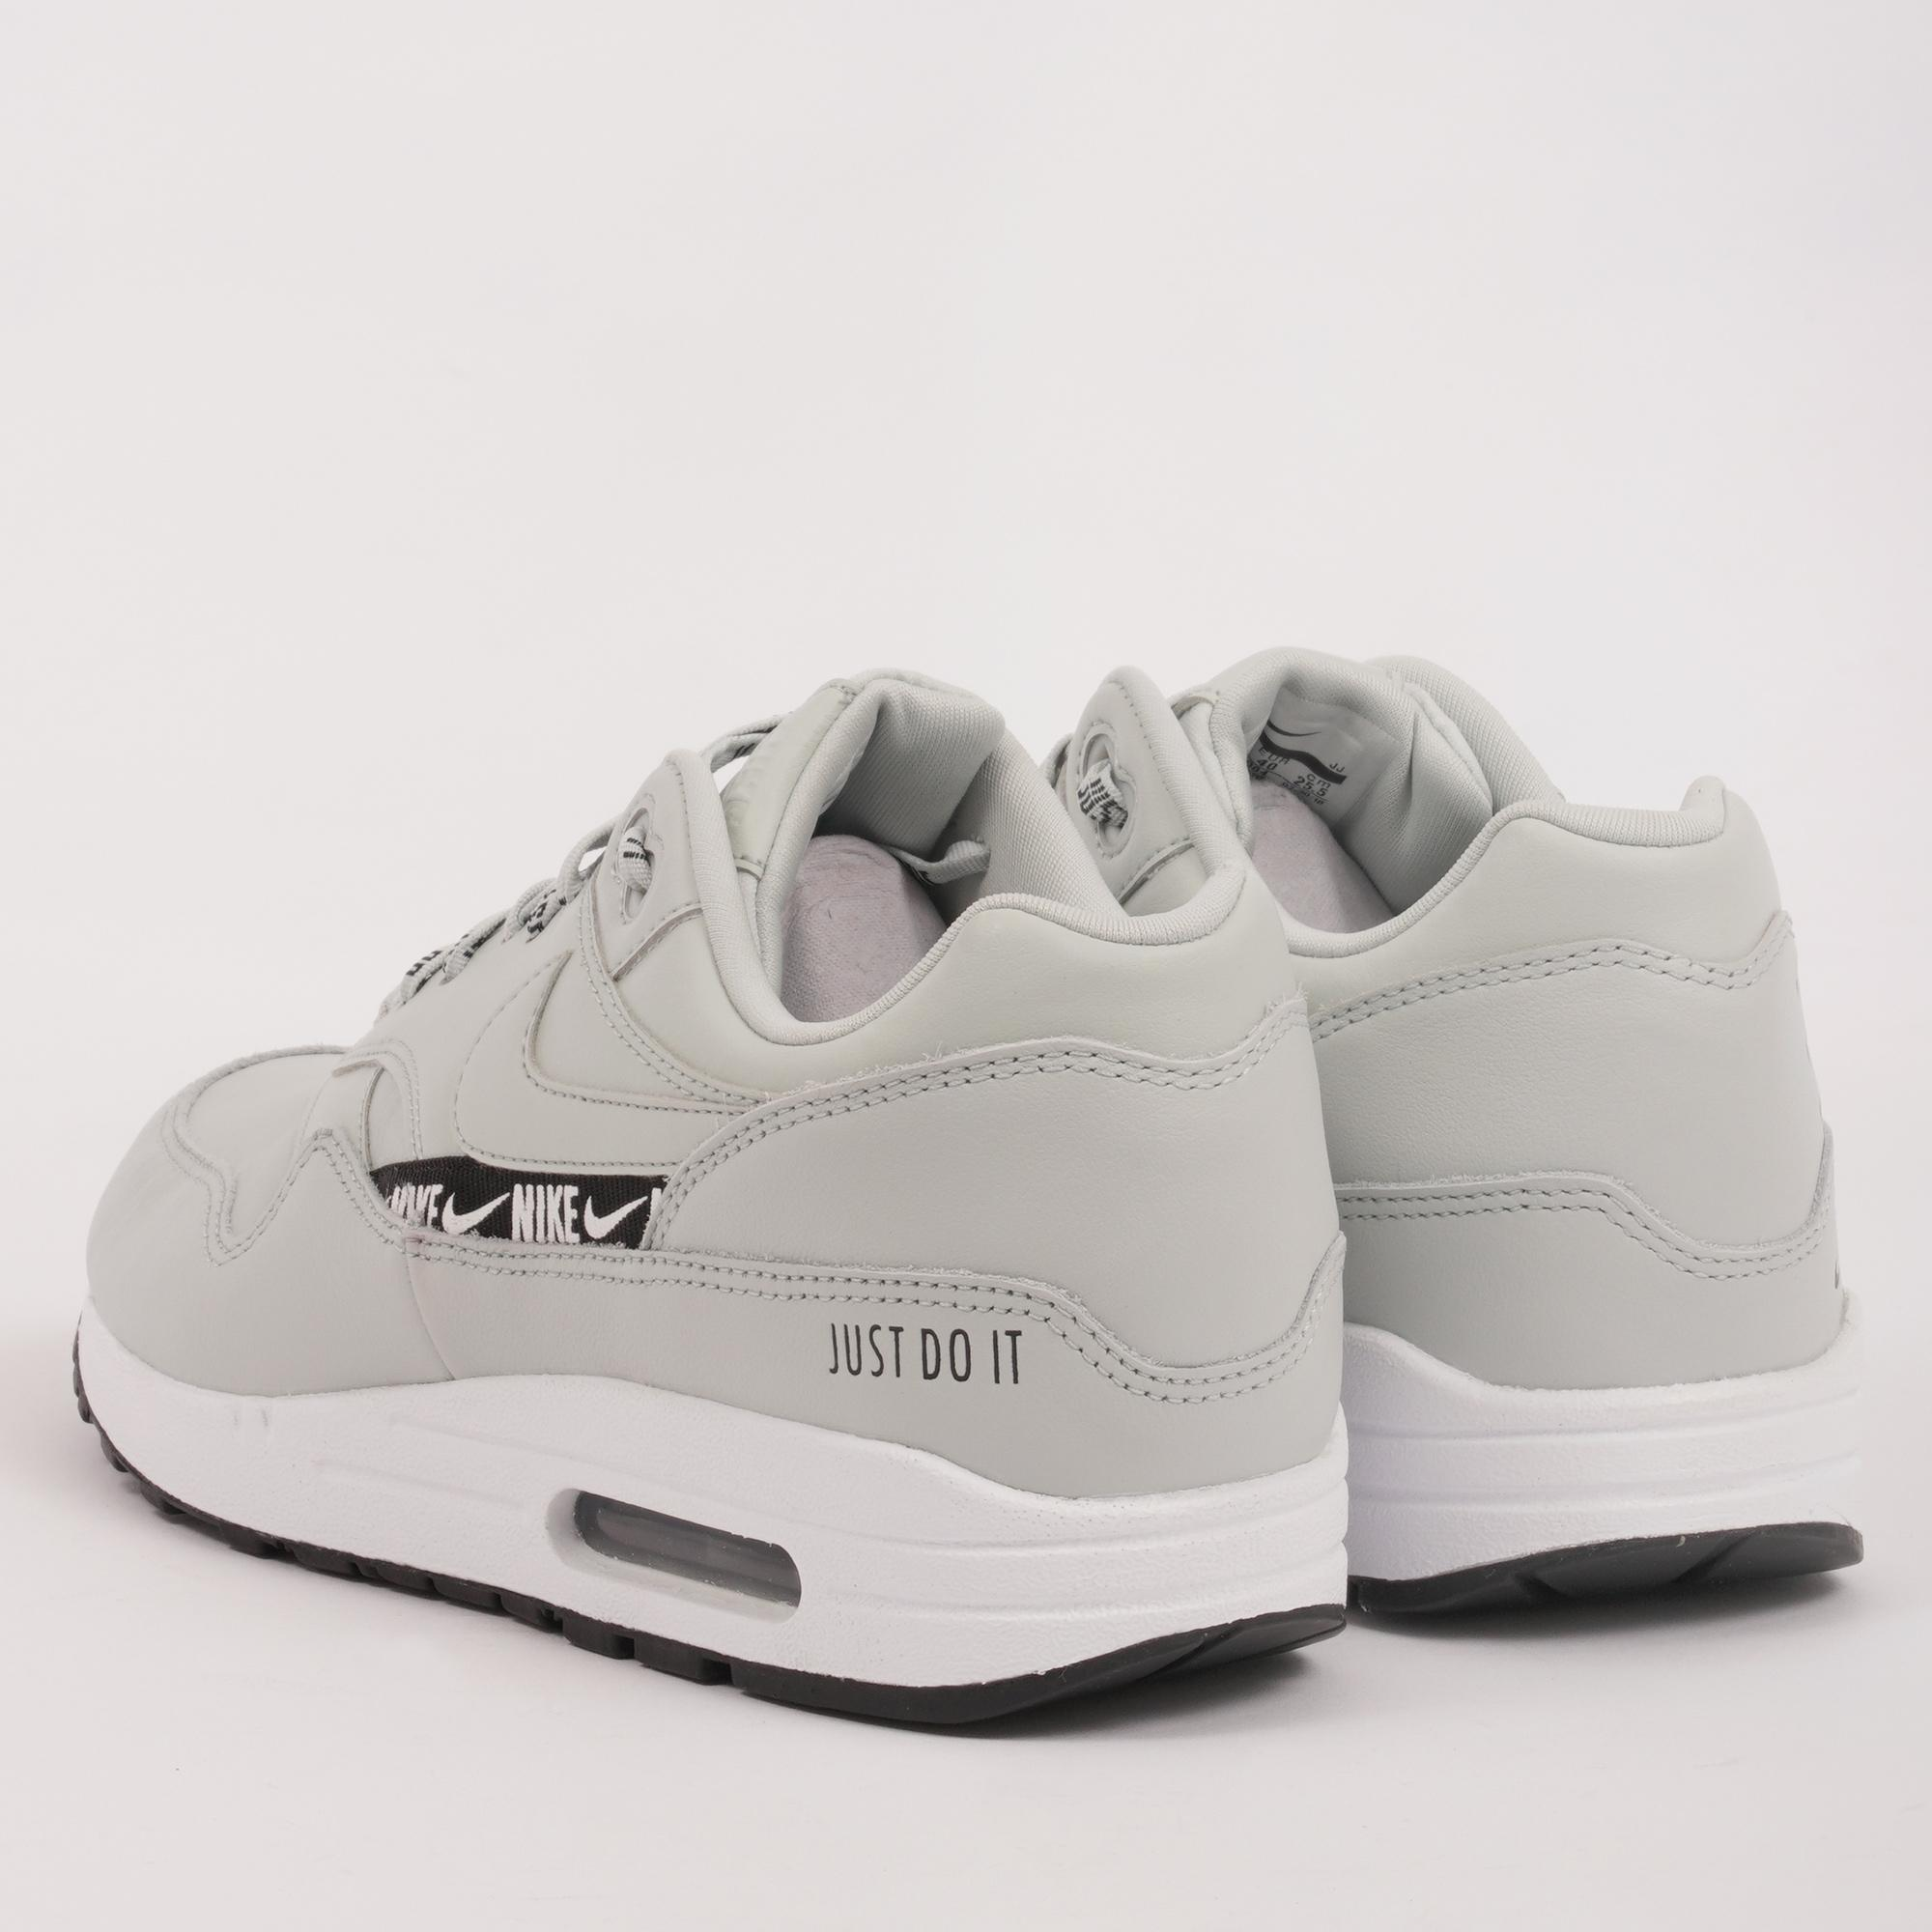 Nike Air Max 1 Se Overbranded - Lyst